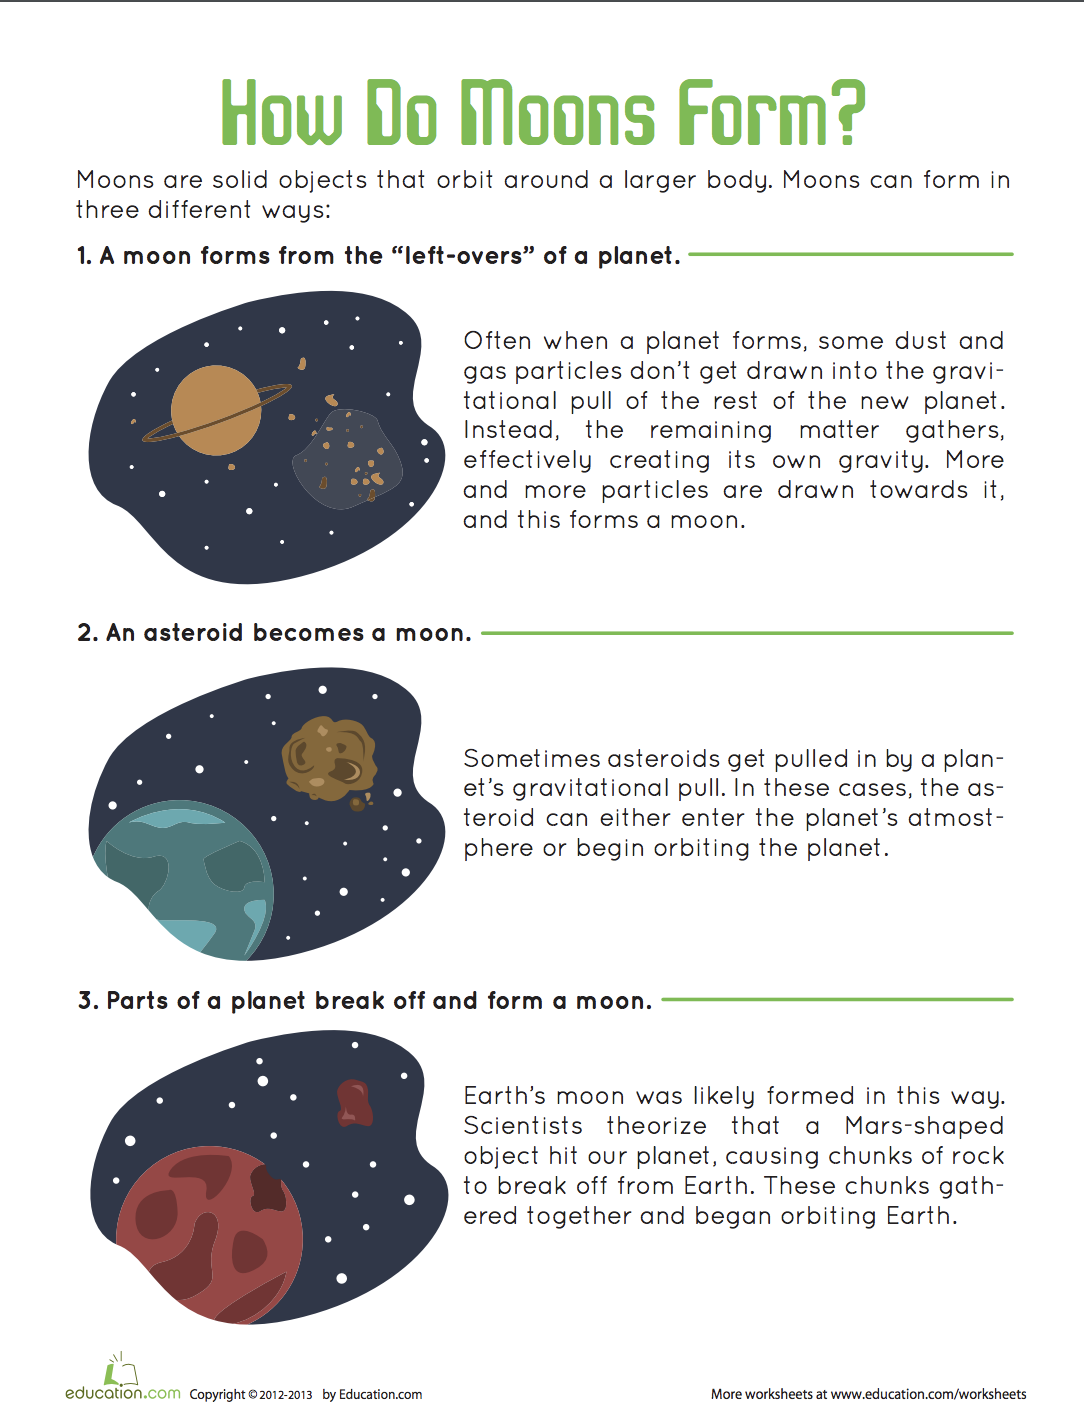 How Do Moons Form